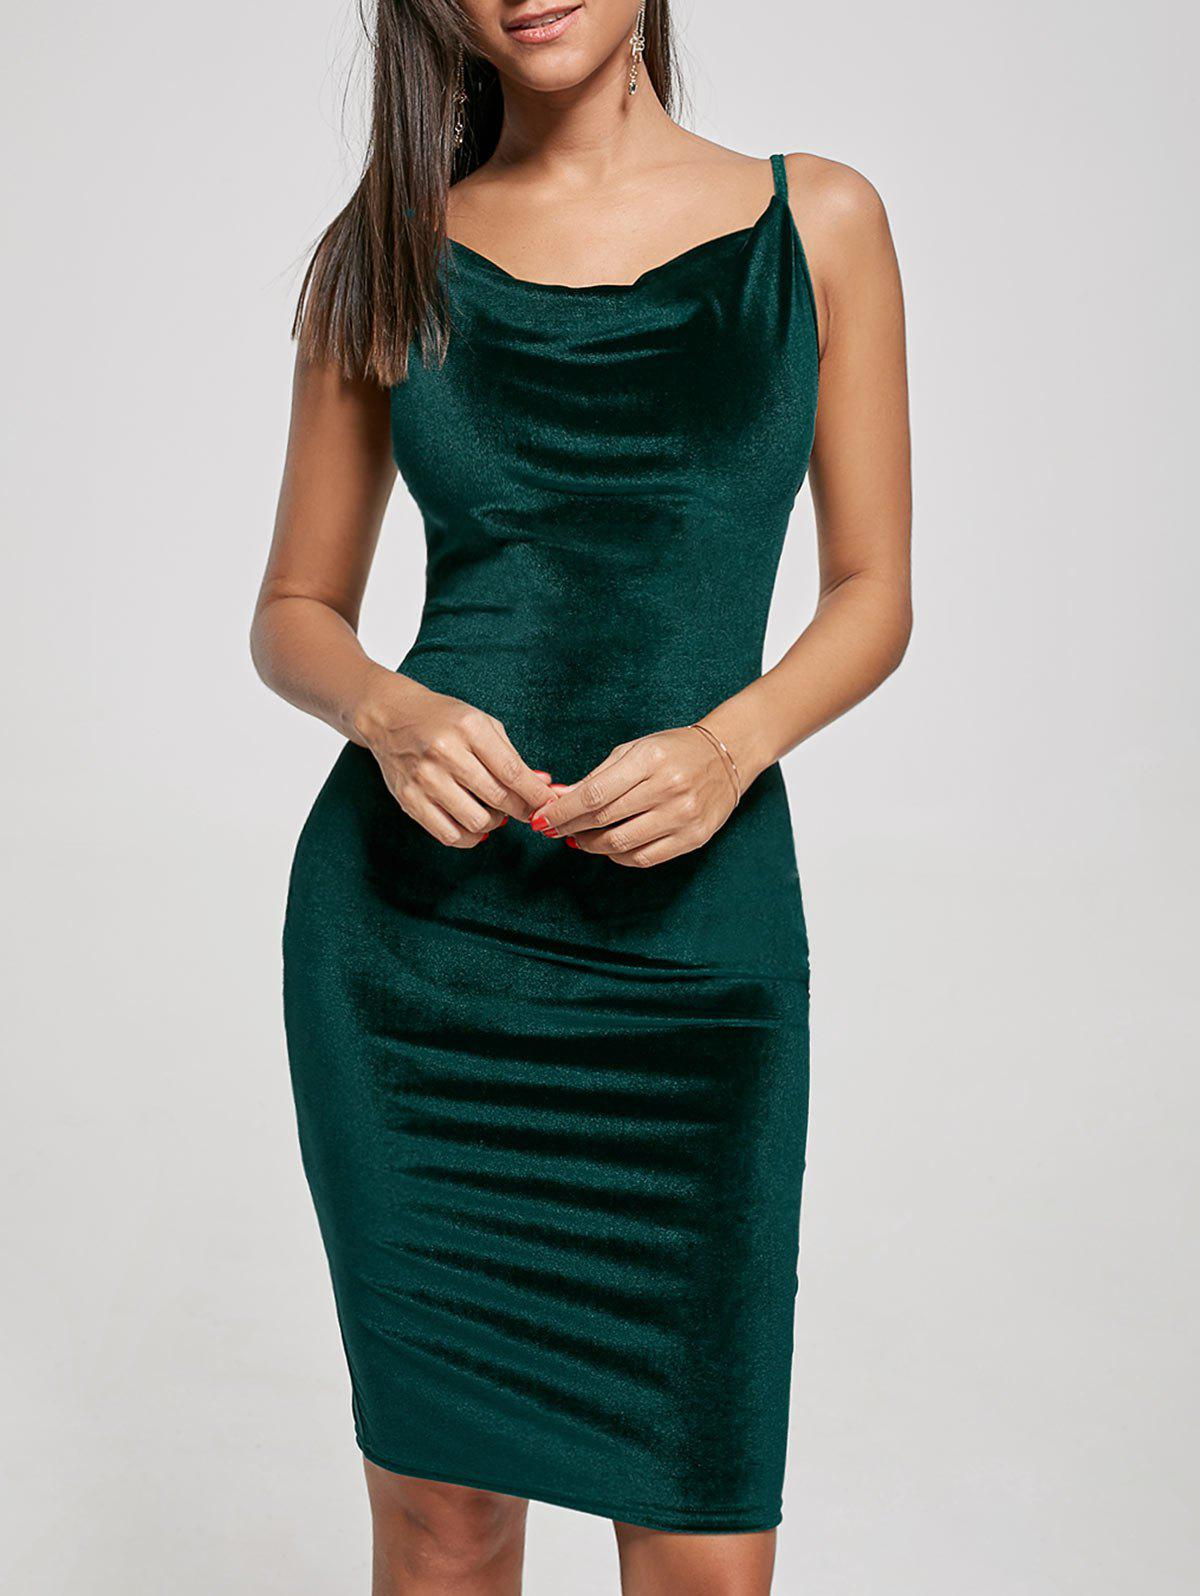 Spaghetti Strap Velvet Dress